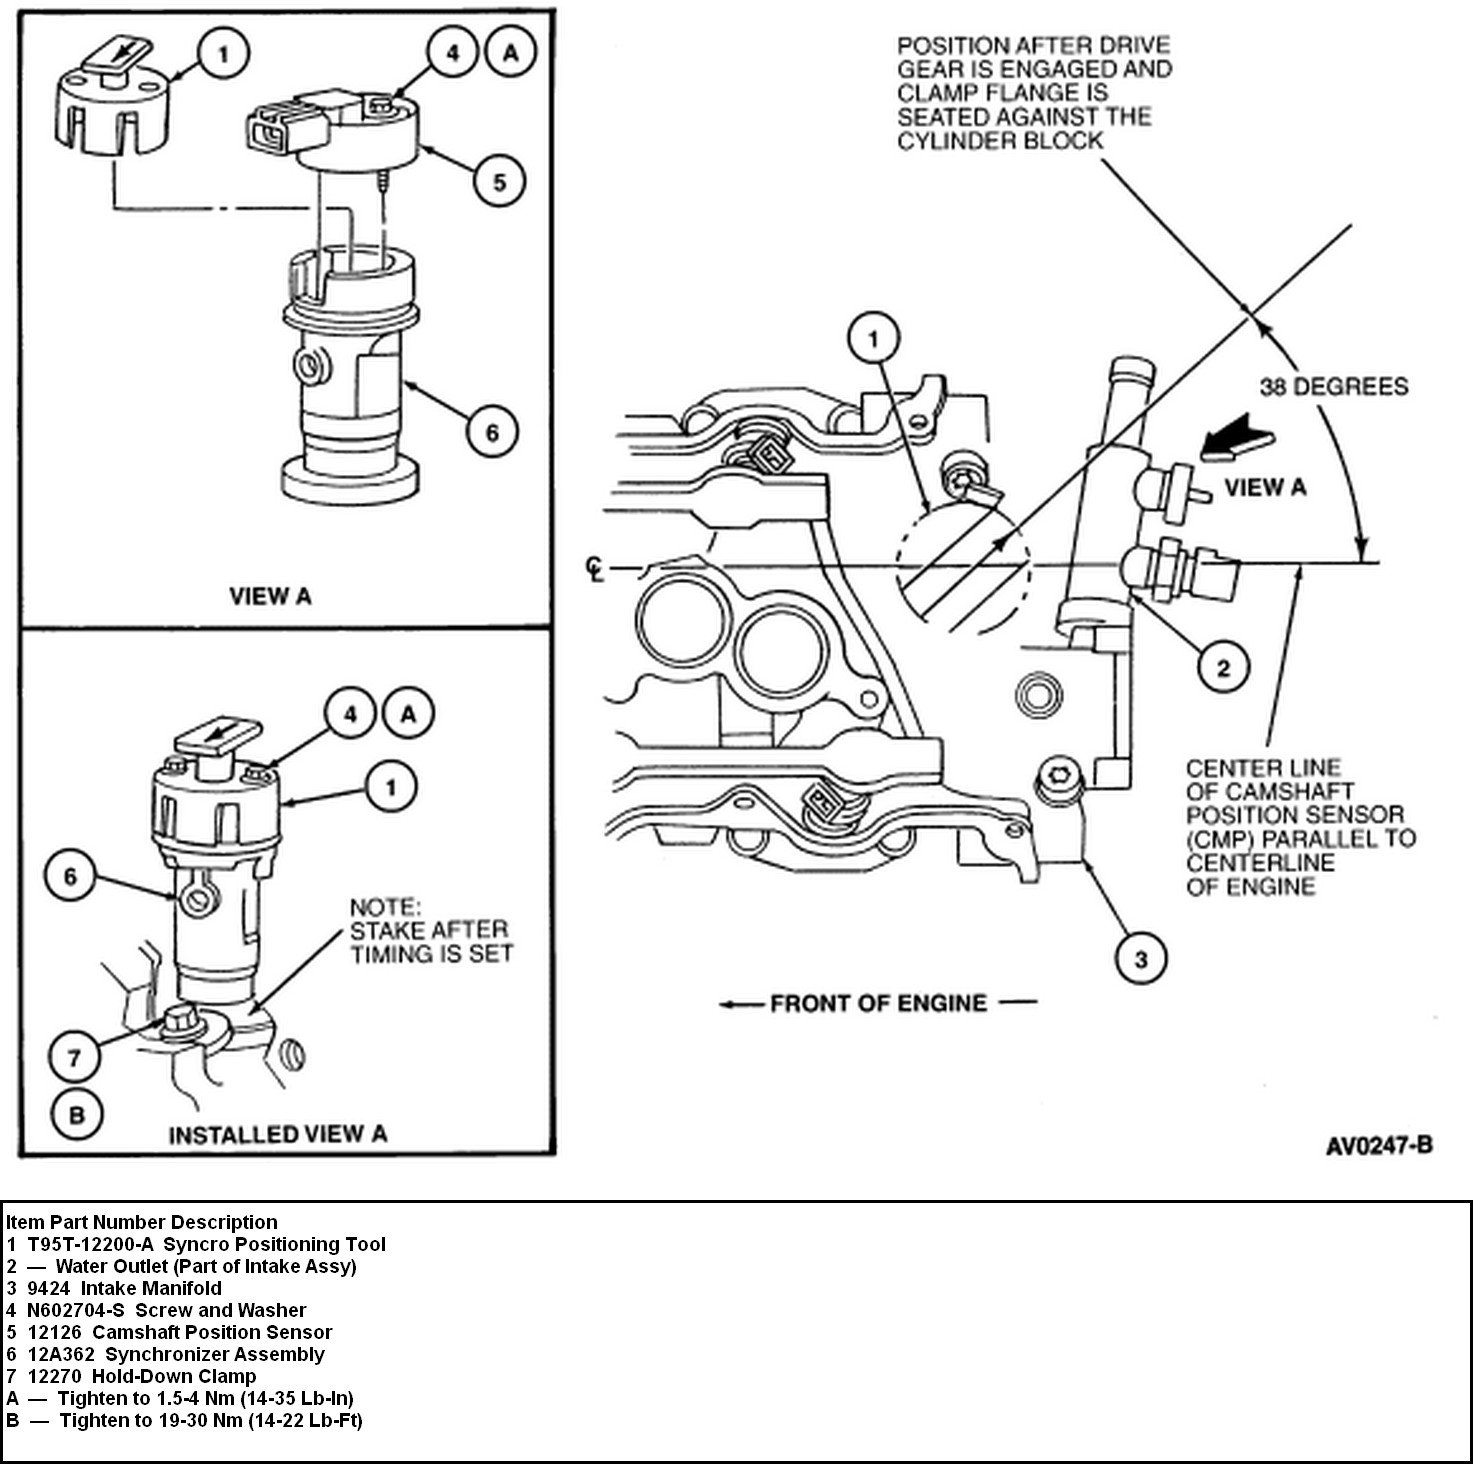 P0325 2000 toyota camry as well 6k9tc Nissan Datsun Quest 2006 Nissan Quest Cam Position Sensor in addition 2bcup Camshaft Position Sensor Located 2005 Nissan further T10510894 Firing order diagram nissan additionally 3e418 2004 I35 Camshaft Position Sensor Located Bank One Infiniti. on bank 1 sensor 2 location nissan maxima